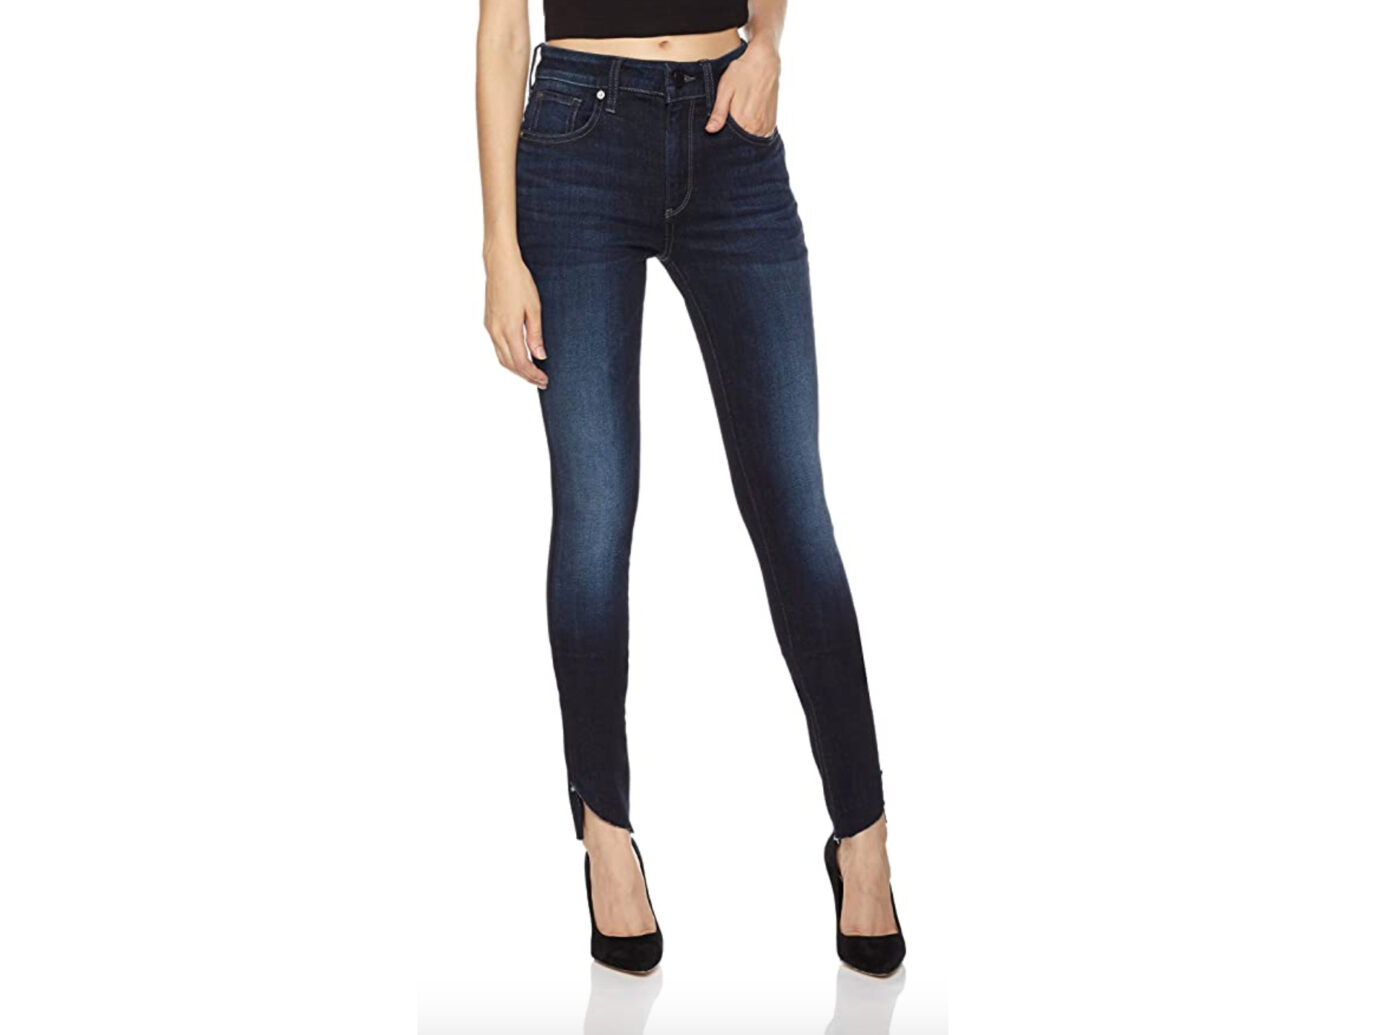 HALE Women's Rogue Stunner Mid Rise Skinny Jean with Step Hem